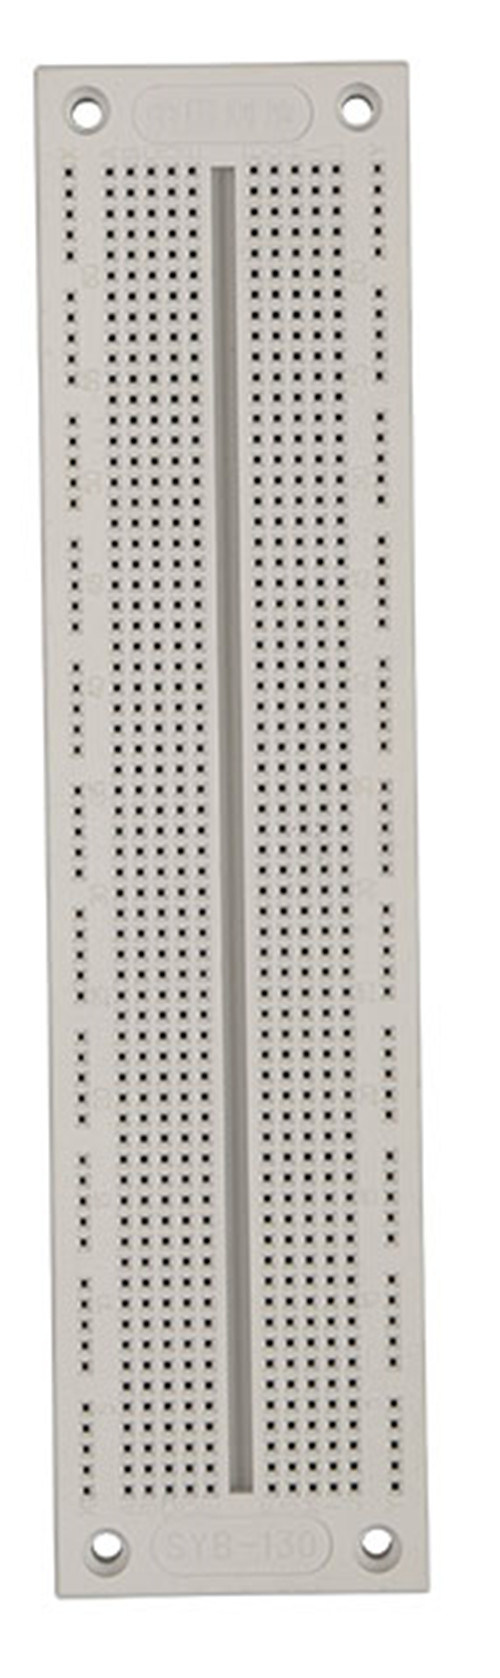 China Test Solderless Breadboard With 760 Tie Ponit Syb 130 Transparent Showing The Metal Strips For Circuit Board